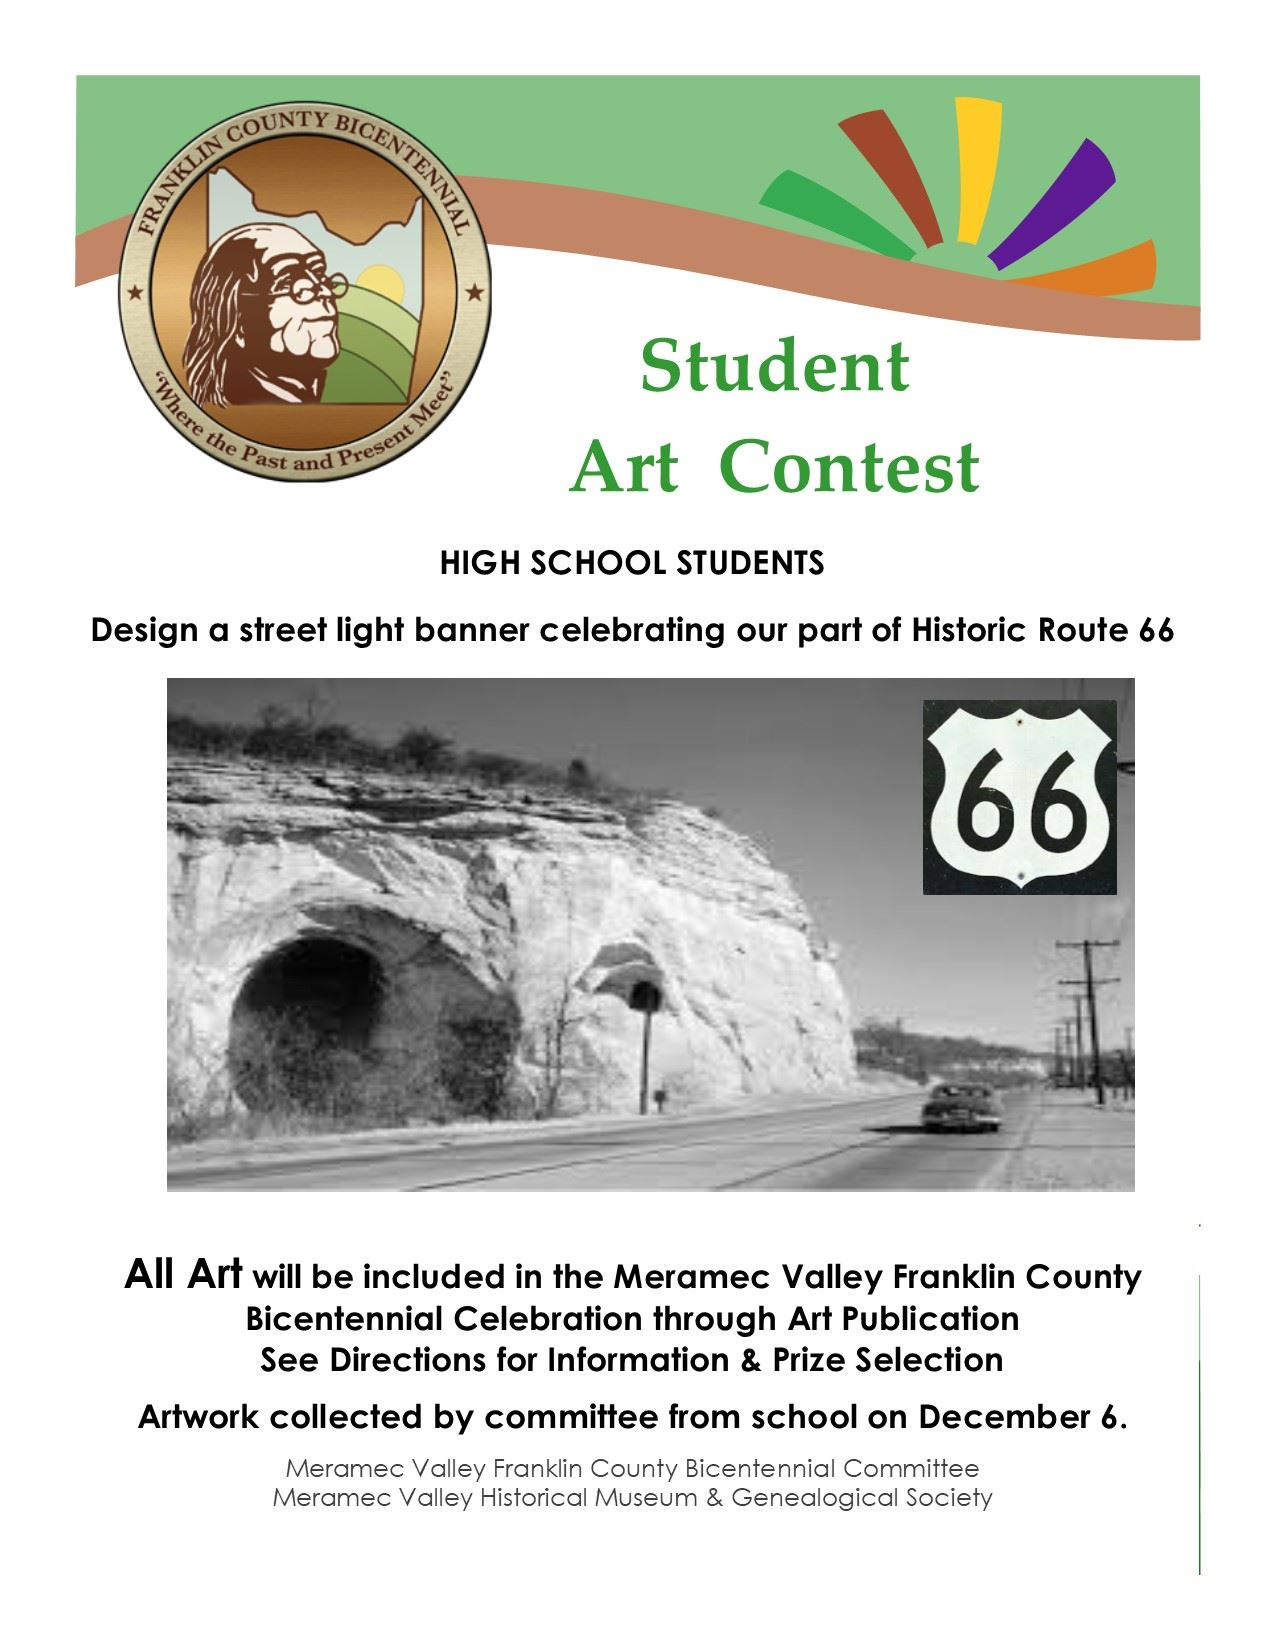 Bicentennial Art Contest Flyer High